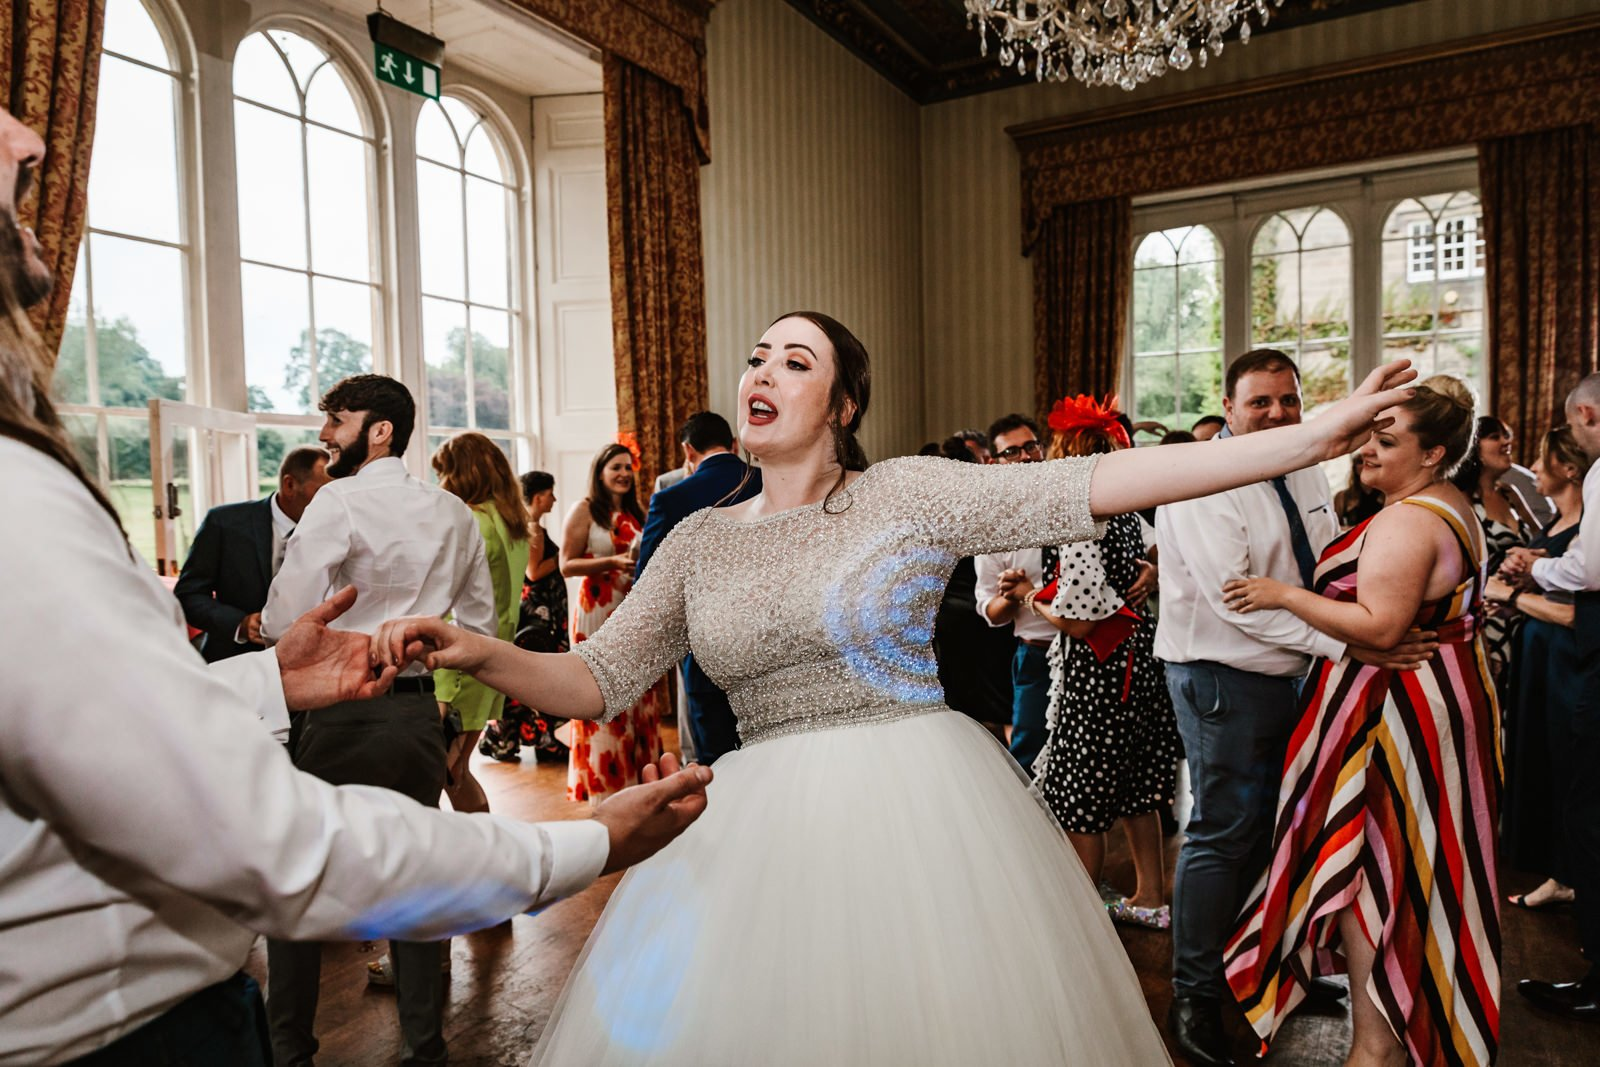 Bride and groom first dance at swinton park